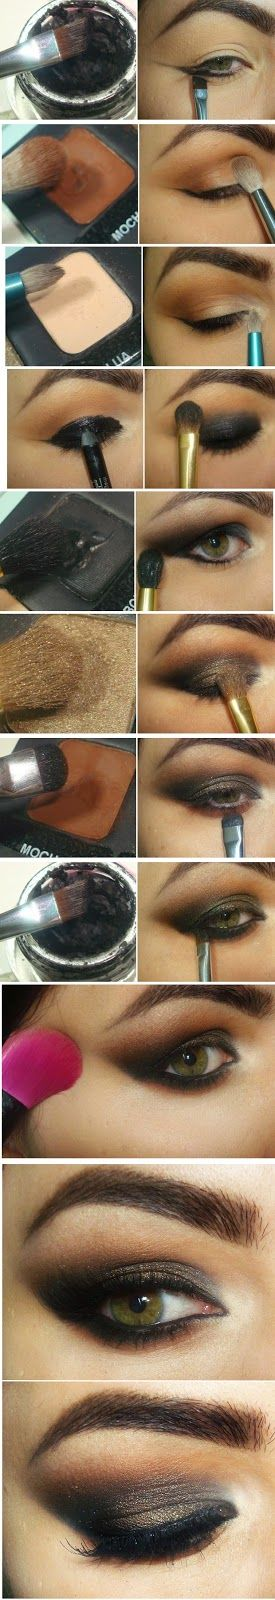 How to : Inspired Smokey Style Makeup Tutorials / Best LoLus Makeup Fashion